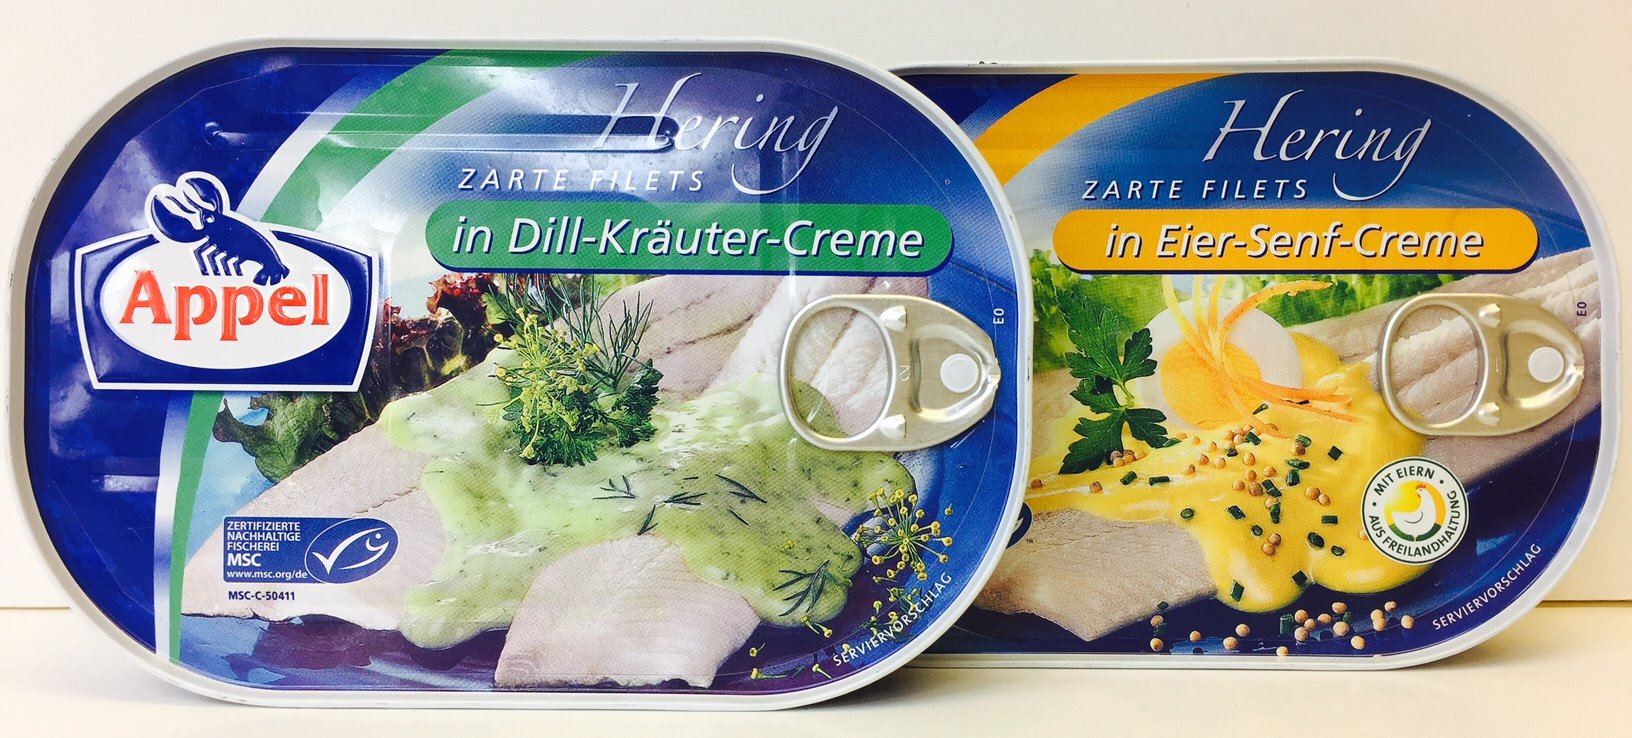 Appel 7.05-Ounce German Herring Fillets Variety Pack of 2 Flavors – in Dill-Krauter-Creme and in Eier-Senf-Creme